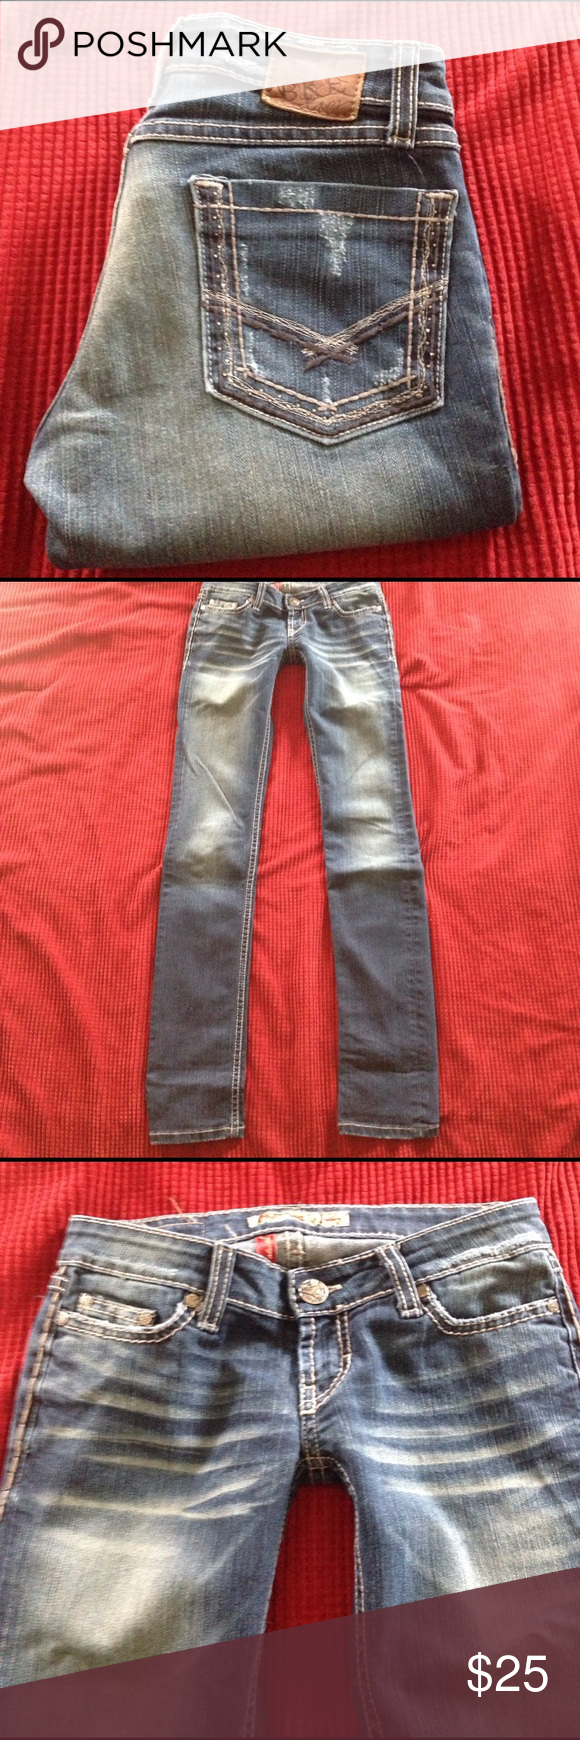 BKE Buckle Stella Skinny Jeans 👖 Good preowned condition BKE Buckle Stella Stretch Skinny jeans. Size 25 x 33 1/2. 👖Material: 76% cotton/ 24% polyester/ 1% spandex. These are in great 👍 condition. Shows some peeling on the back by the pockets but is not really noticeable. BKE Jeans Skinny